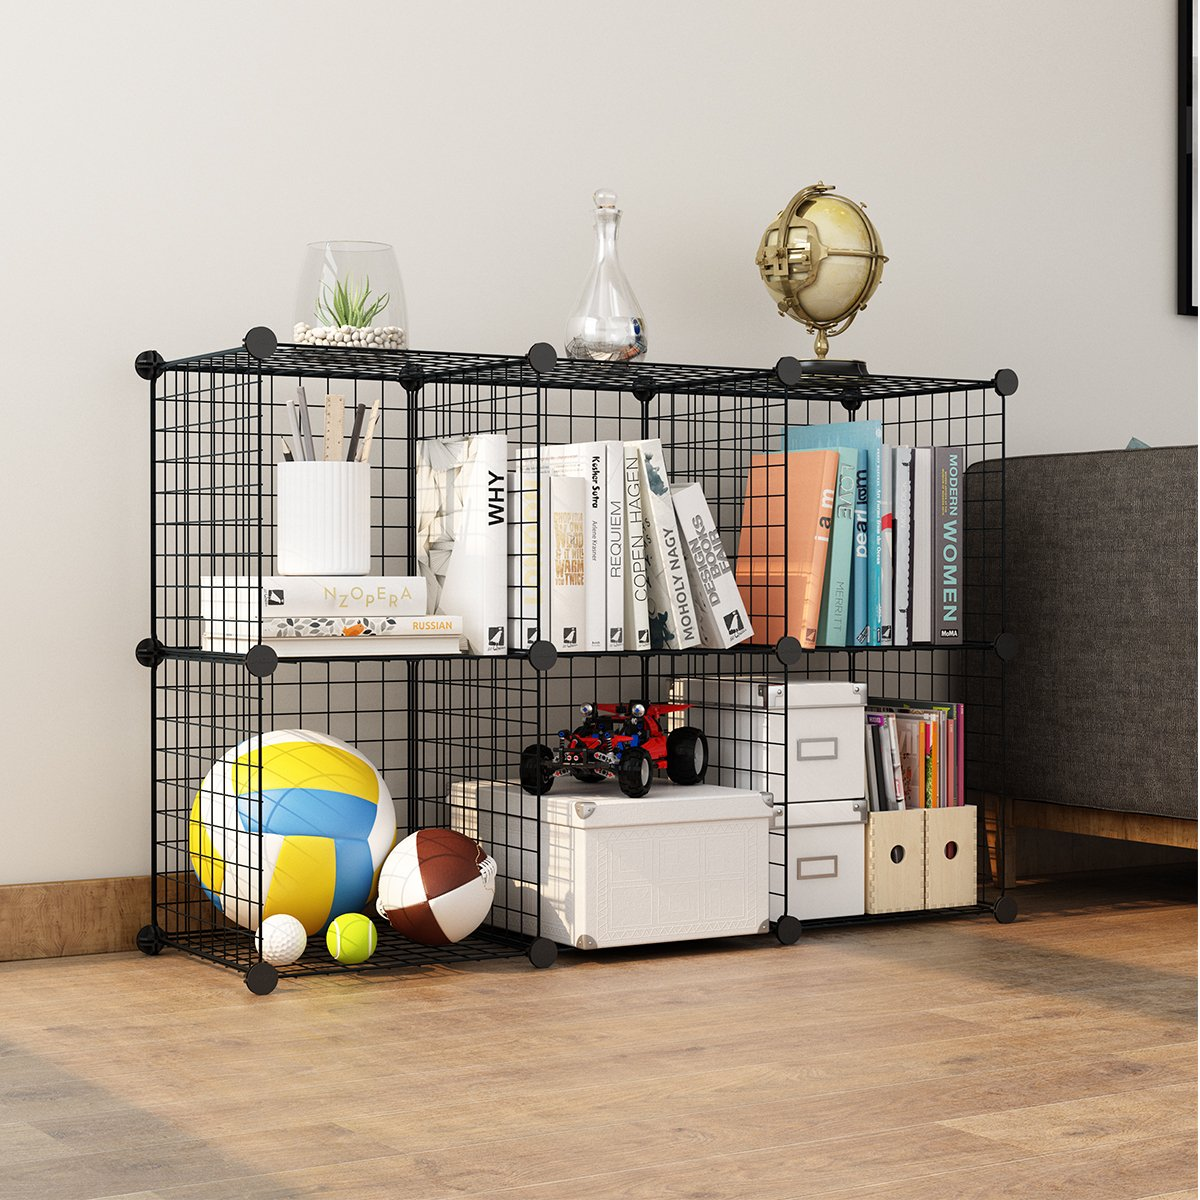 LANGRIA 24 pcs Metal Wire Storage Cubes Organizer, DIY Small Animal Cage for Rabbit, Guinea Pigs, Puppy | Pet Products Portable Metal Wire Yard Fence (Black) by LANGRIA (Image #3)